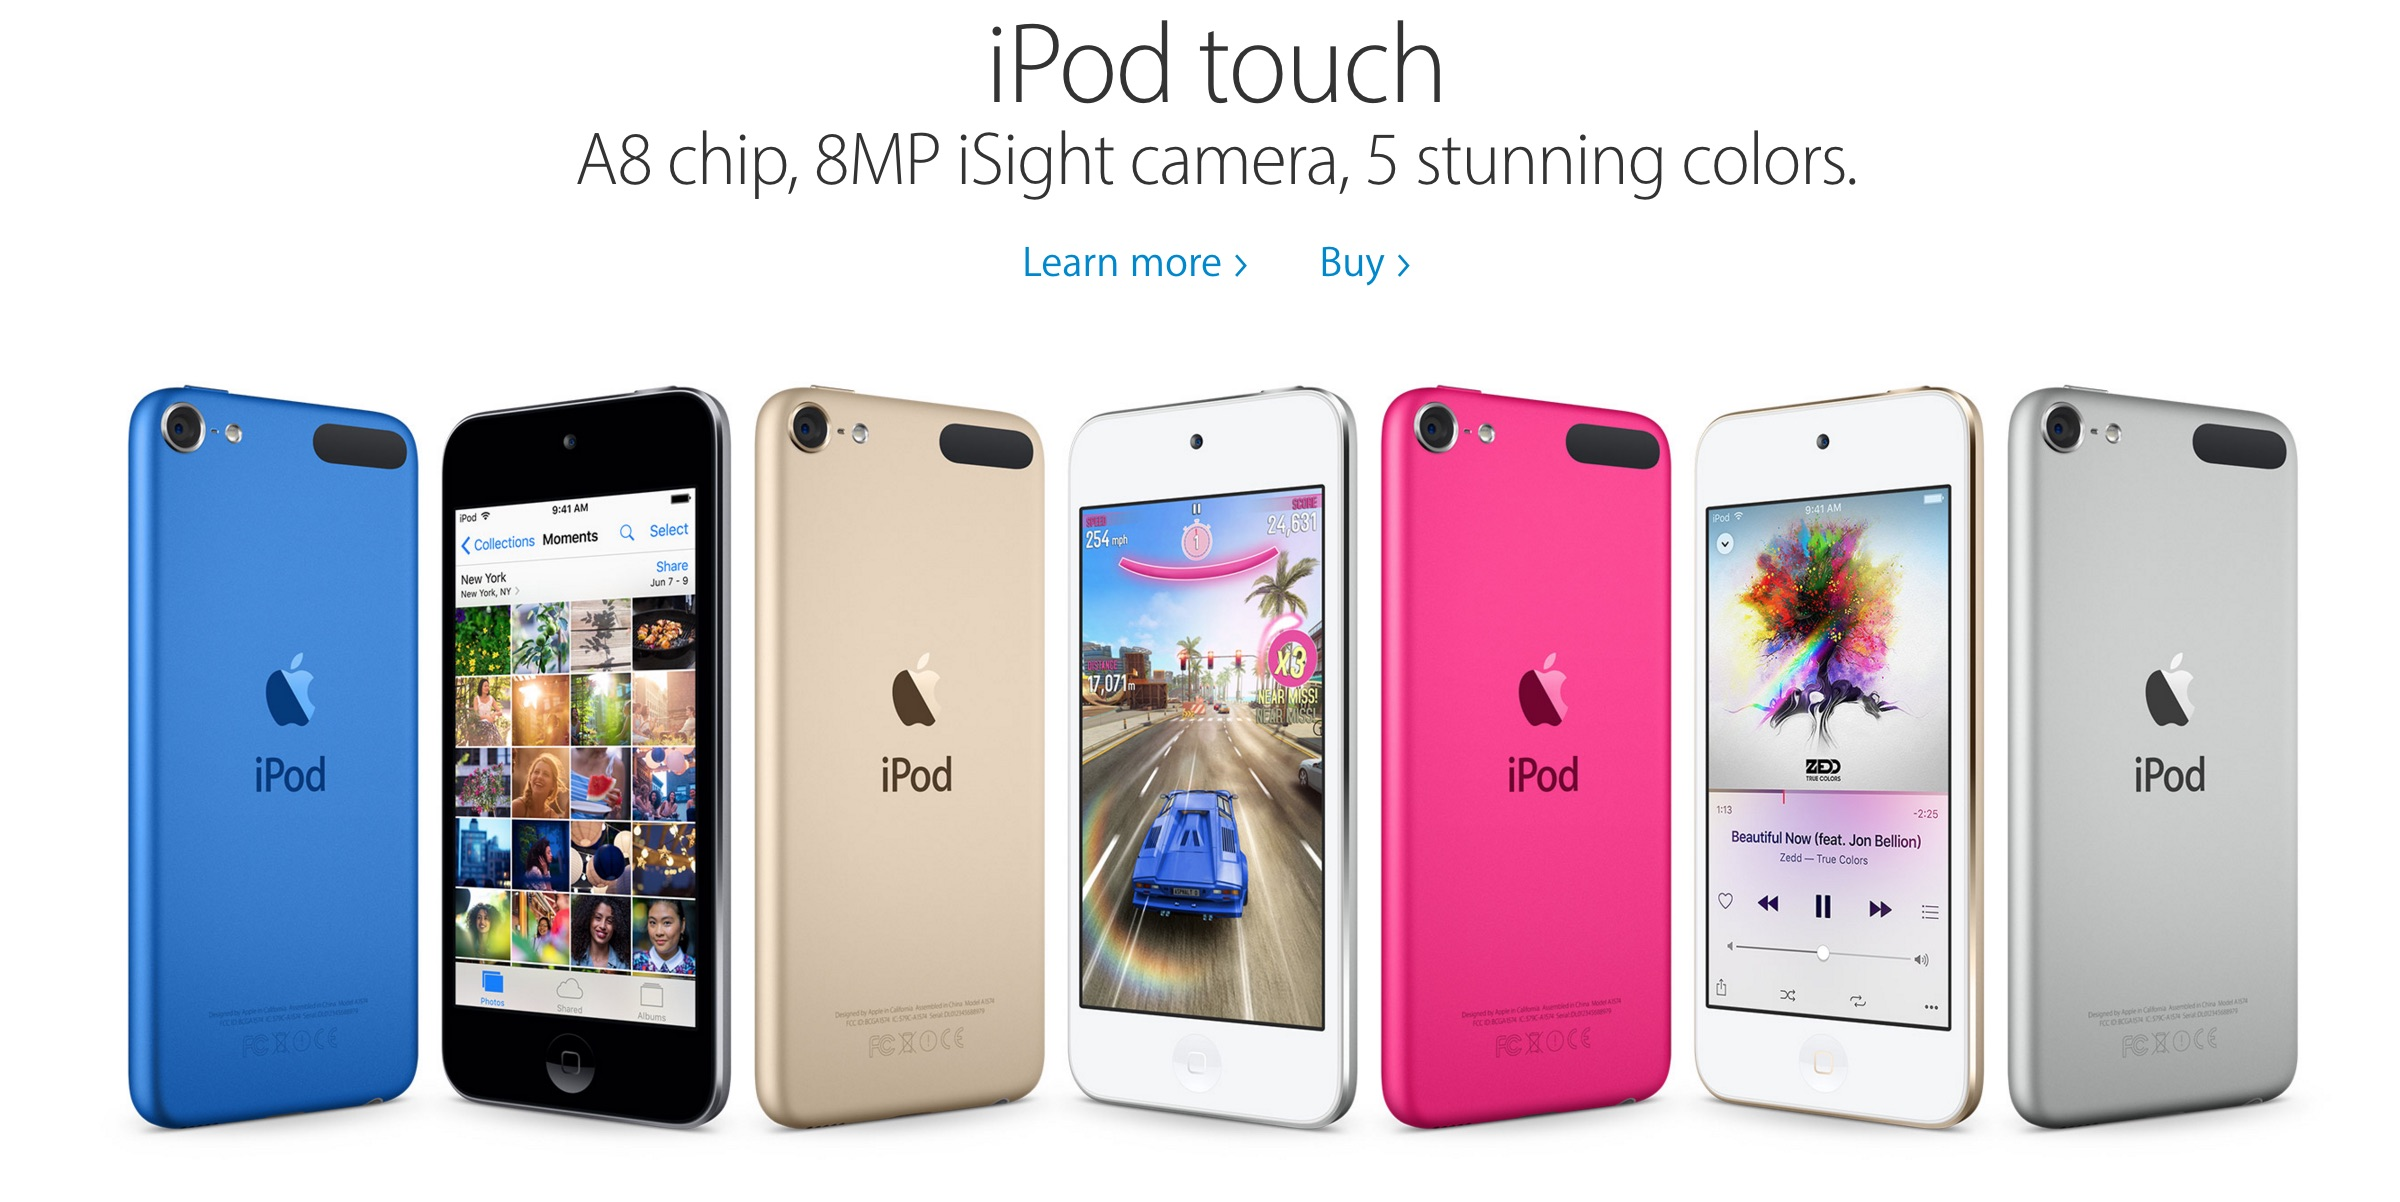 iPhone-6c-ipod